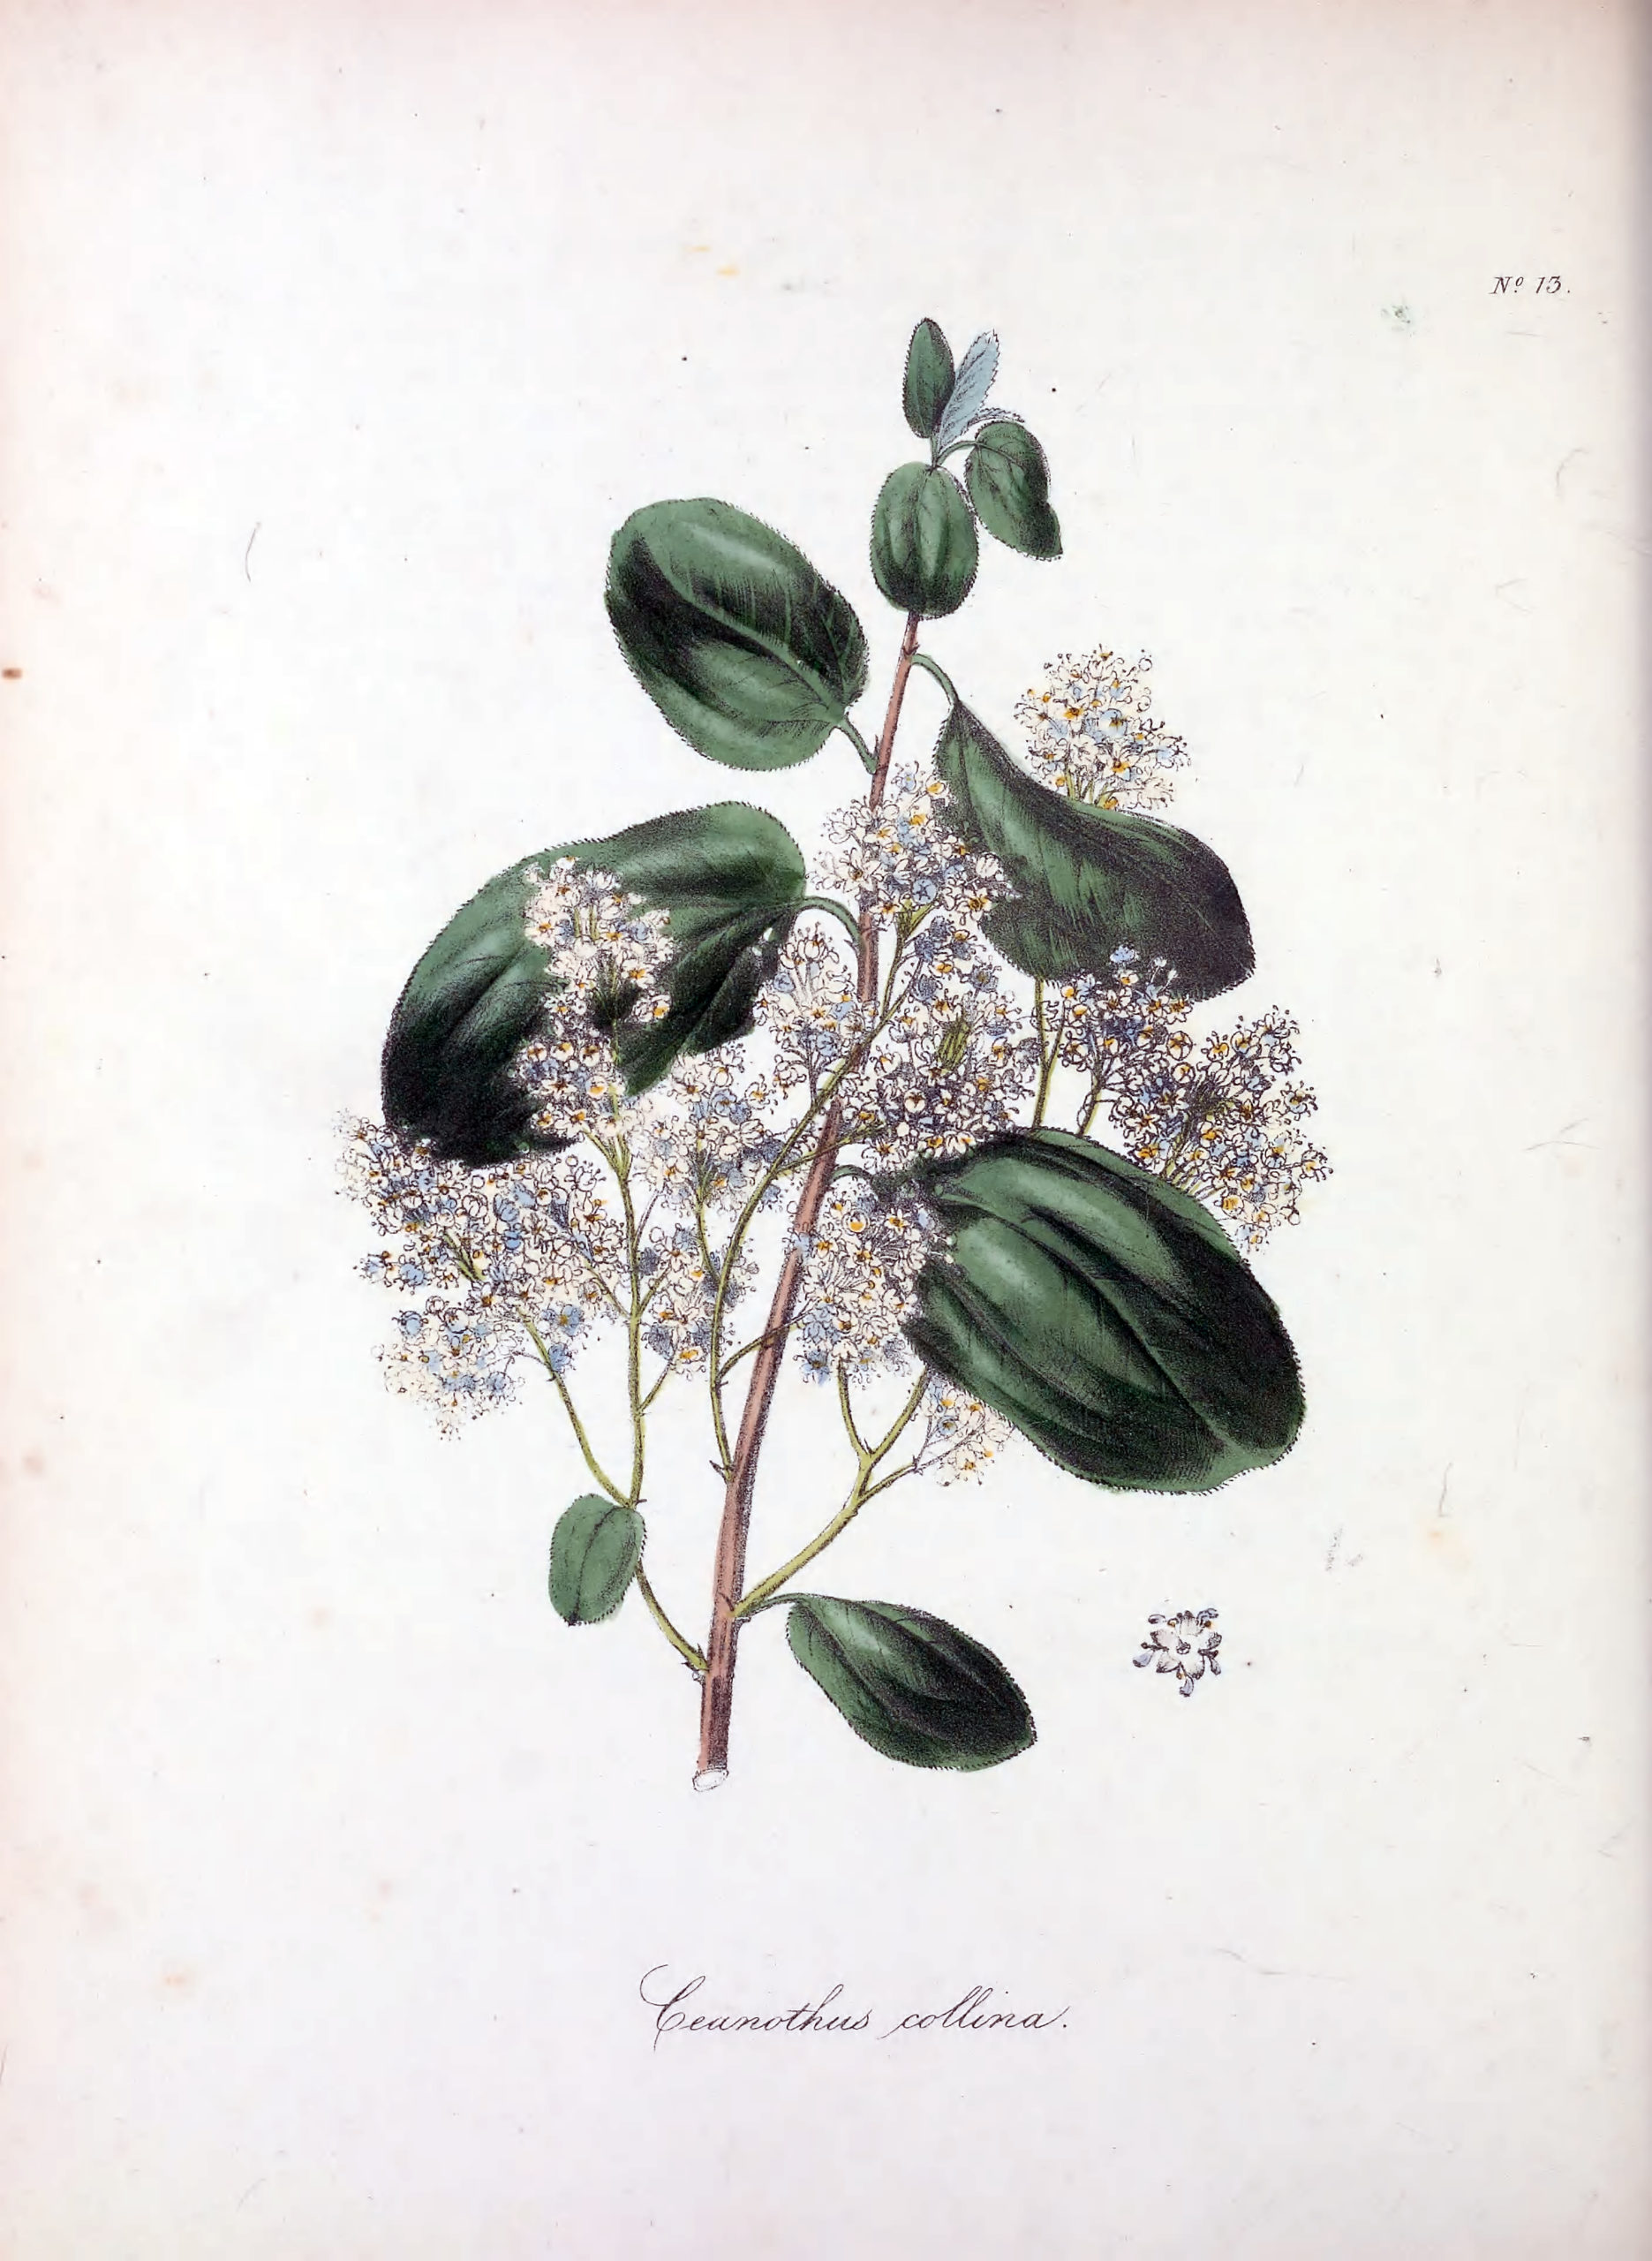 Vintage Botanical Prints - 41 in a series - Ceanothus collina (Mountain ceanothus) from The Floral Cabinet and Magazine of Exotic Botany (1837)